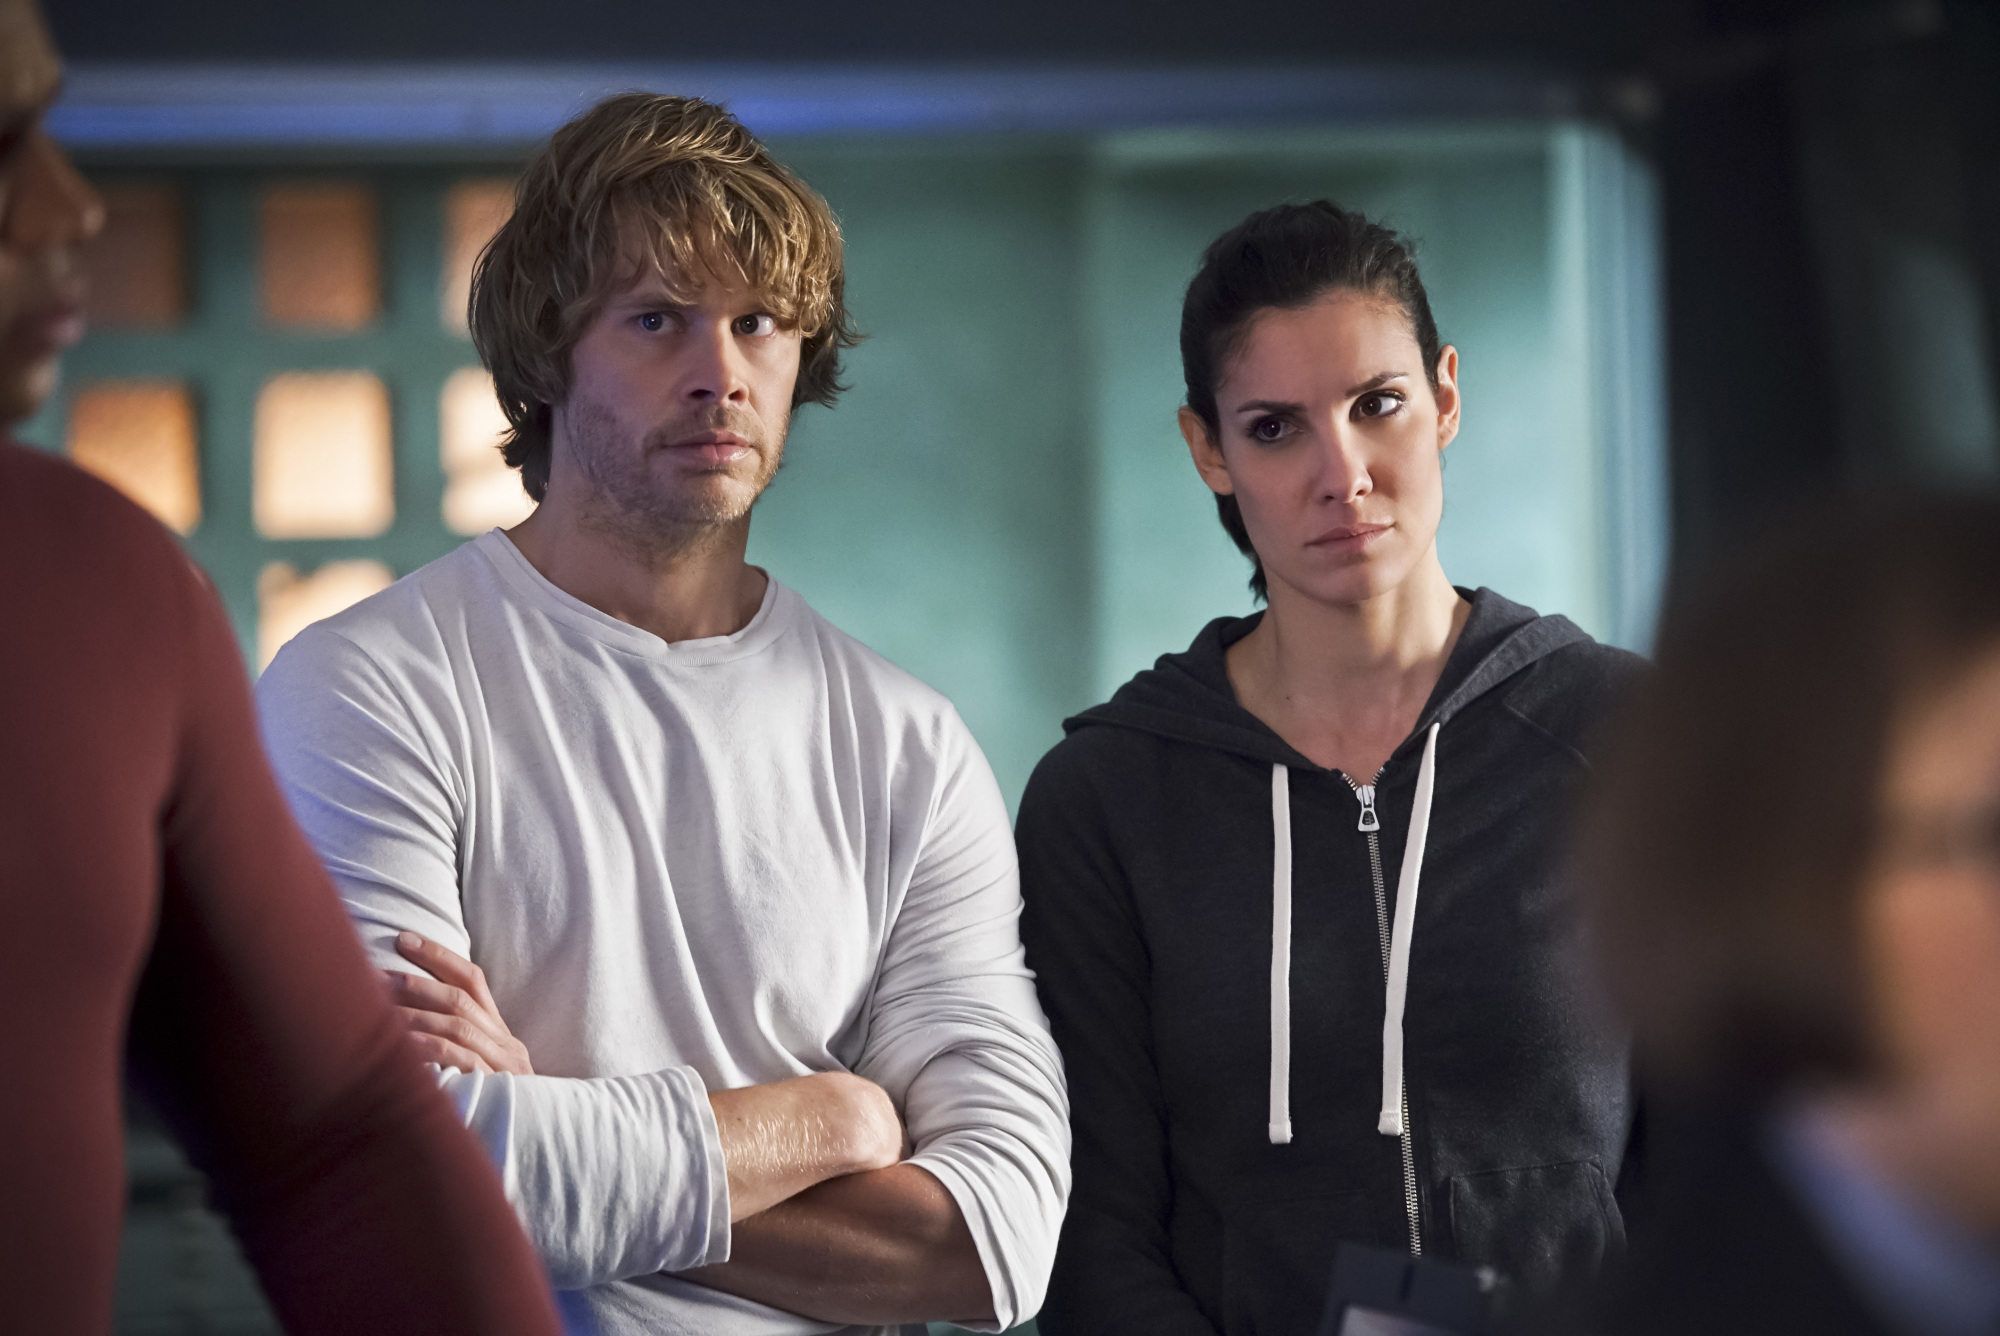 NCIS: Los Angeles will follow the team as they must determine who can be trusted.